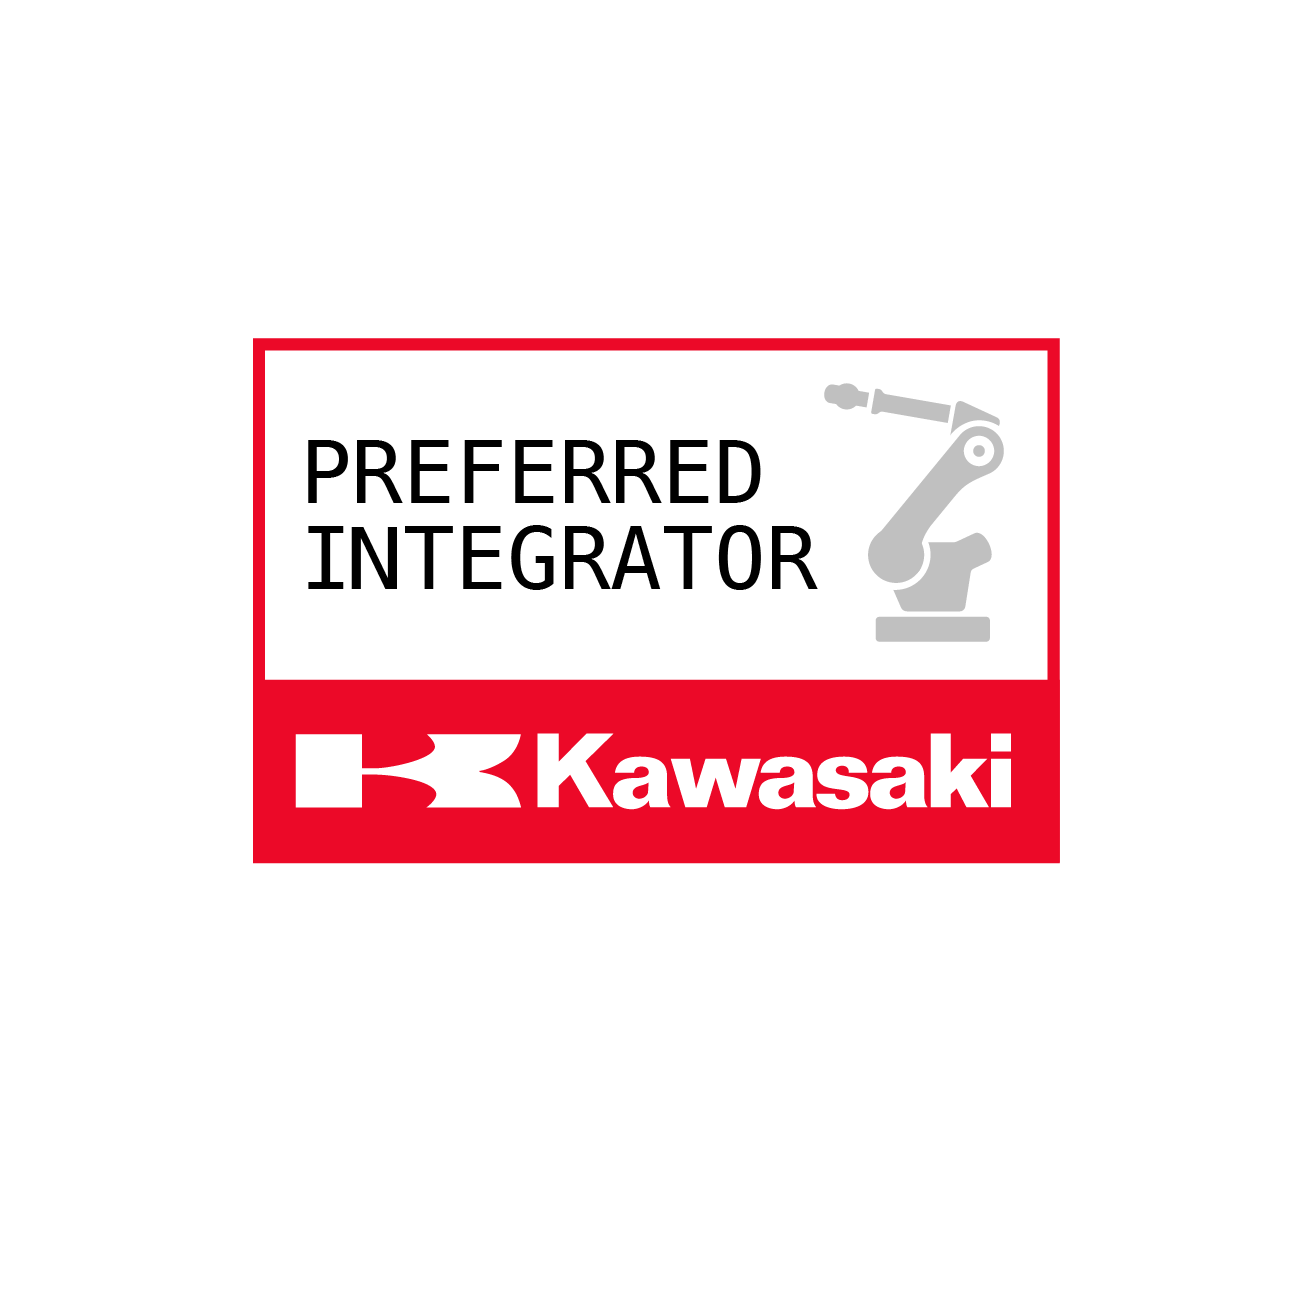 TA Systems Kawasaki Preferred Integrator